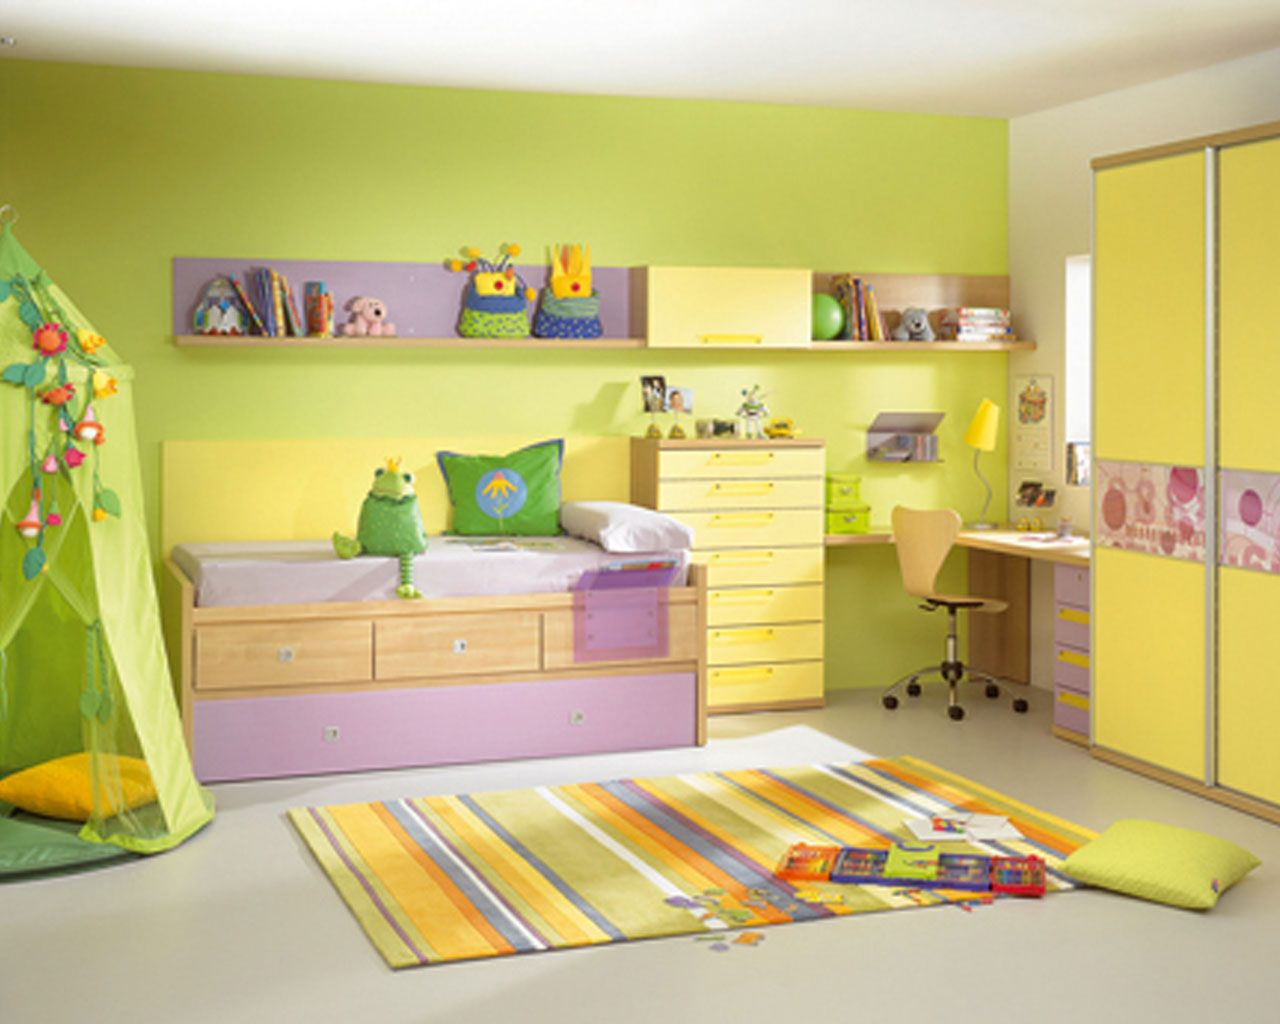 Green room paint ideas - Lime Green And White Themed Kids Room Paint Ideas With Simple Brown Wood Bed Frame That